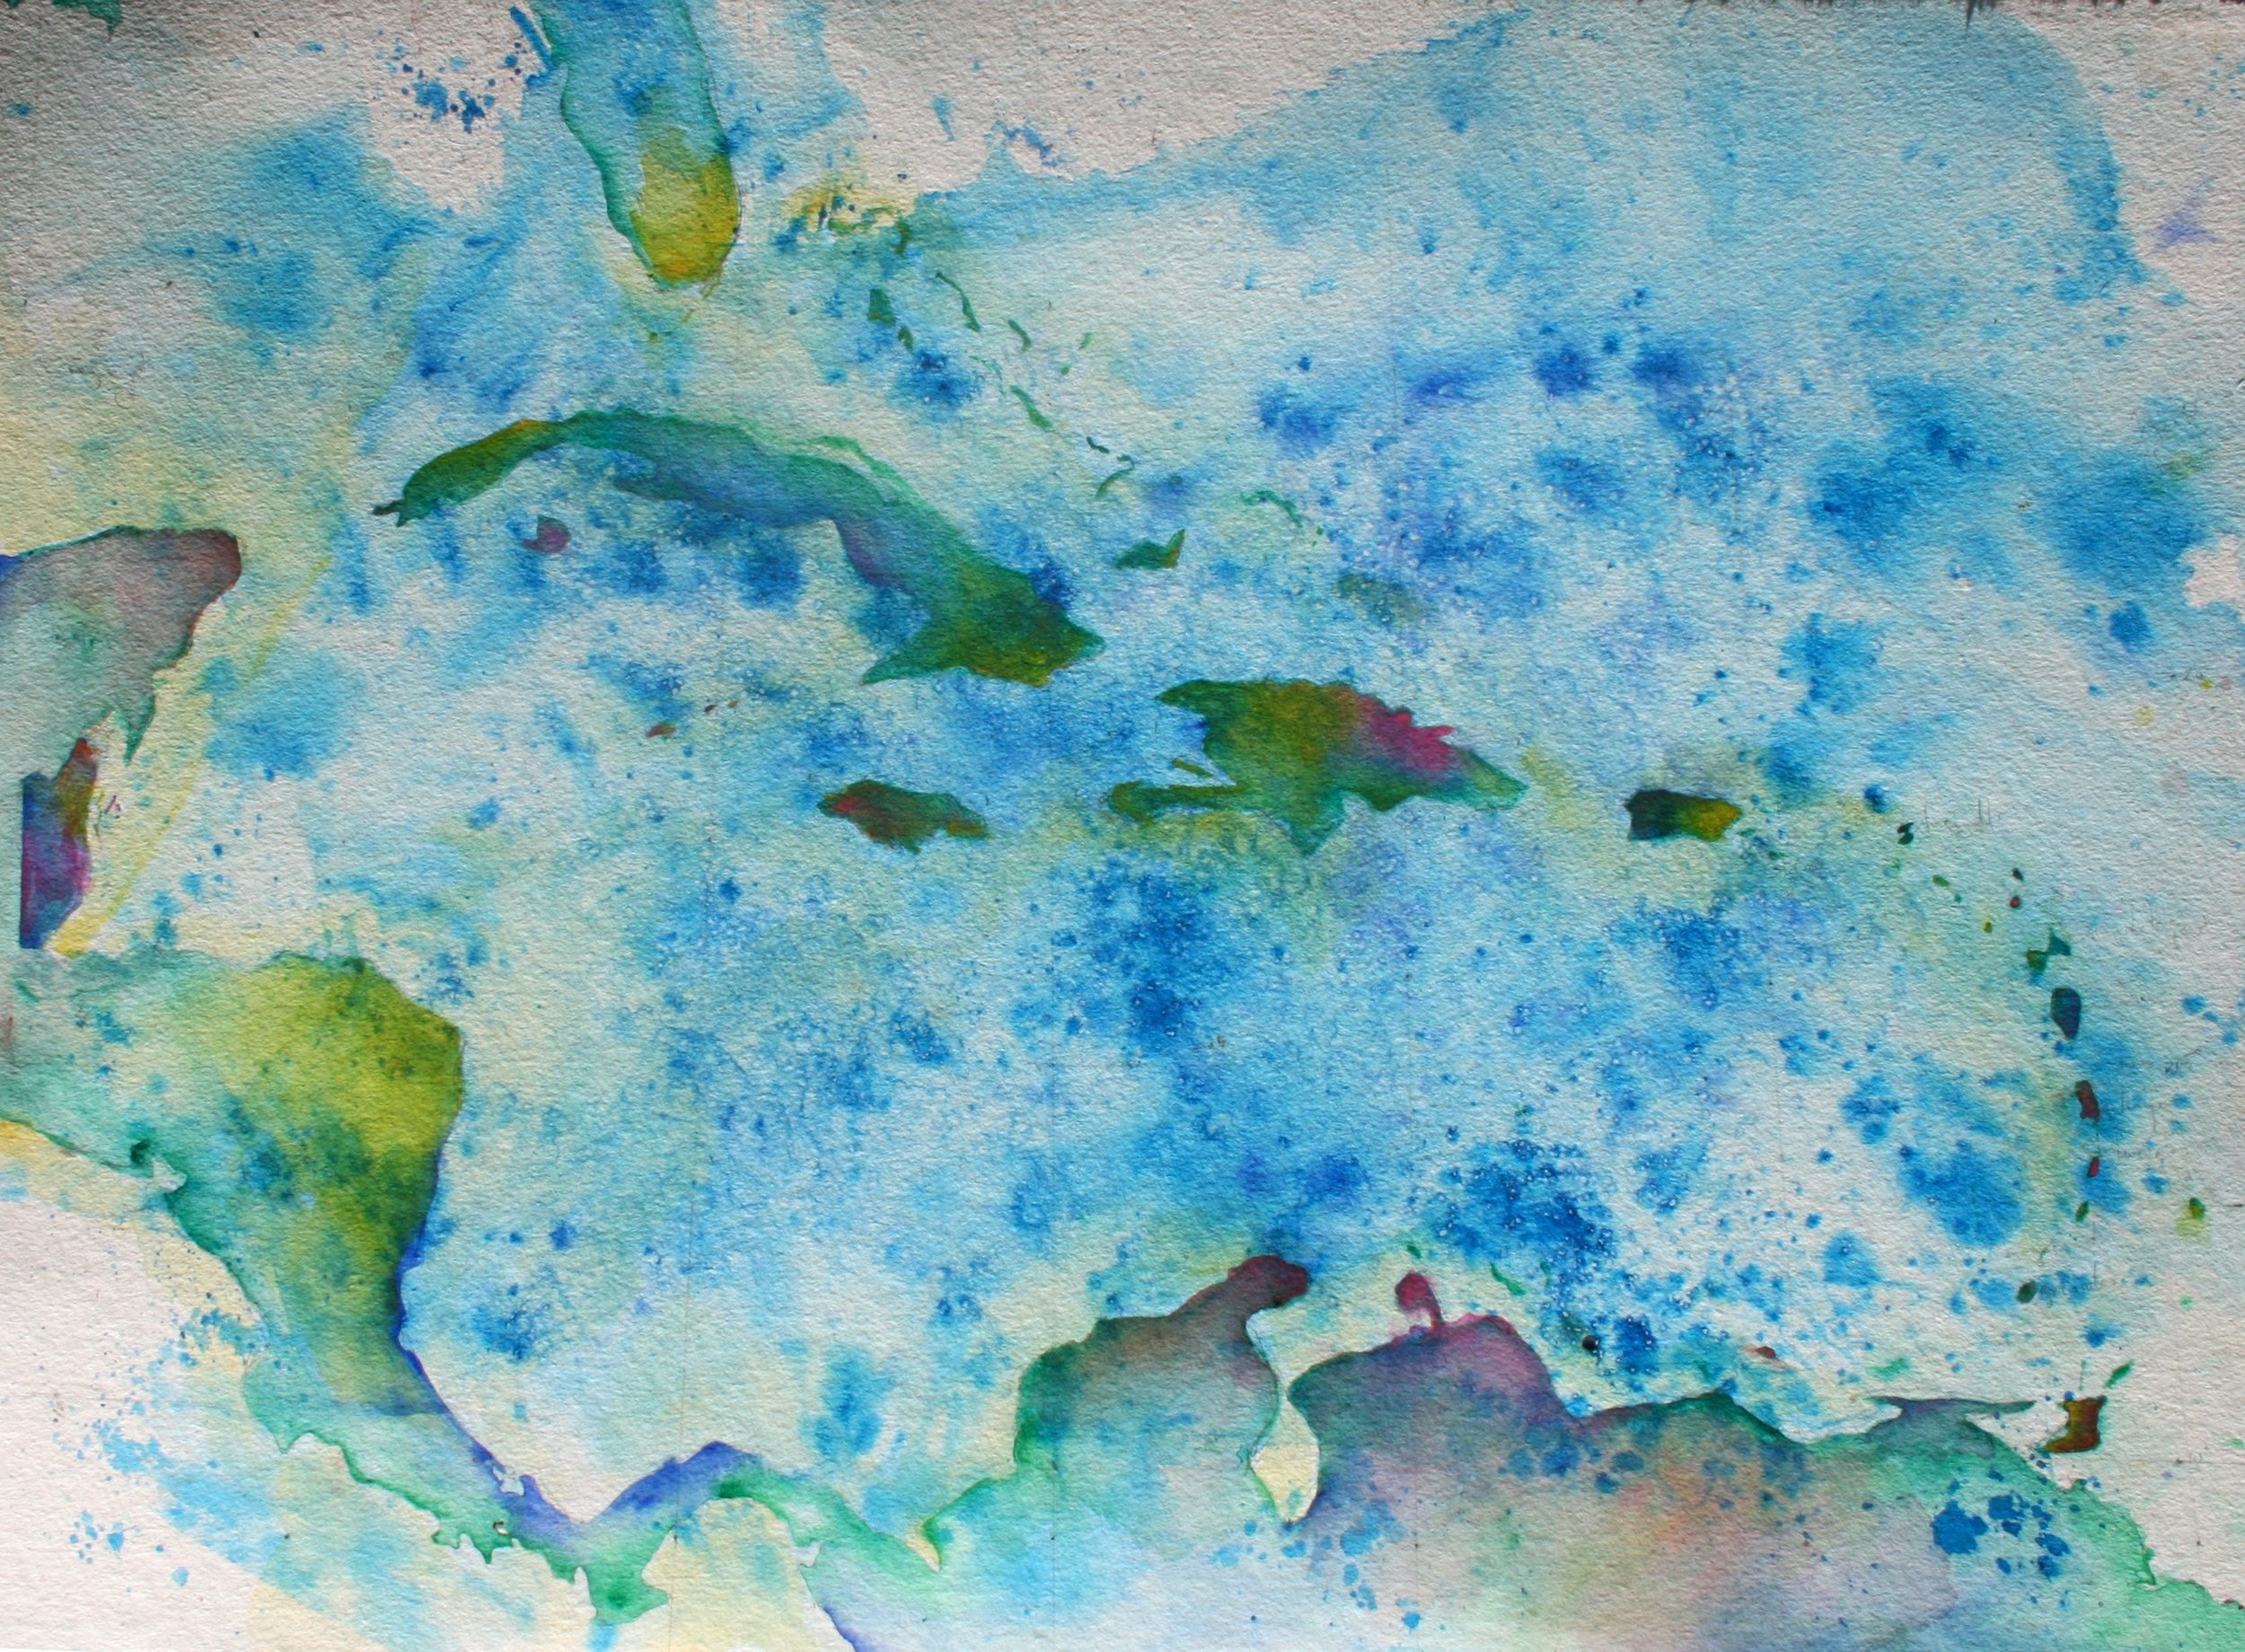 The Vibrant Caribbean - If I cannot be somewhere physically, then I'll write about it and illustrate it and breathe it in and meditate on it until I find myself there... this new saltscrubbed water color illustrates the vibrant energy of the Caribbean Sea and its surrounding islands. If you look at it long enough, you can start to feel the warm, trade wind breeze blowing through your hair, smell the salty scents from the easterly wind, and hear the sounds of the waves as they slowly tumble upon one another.